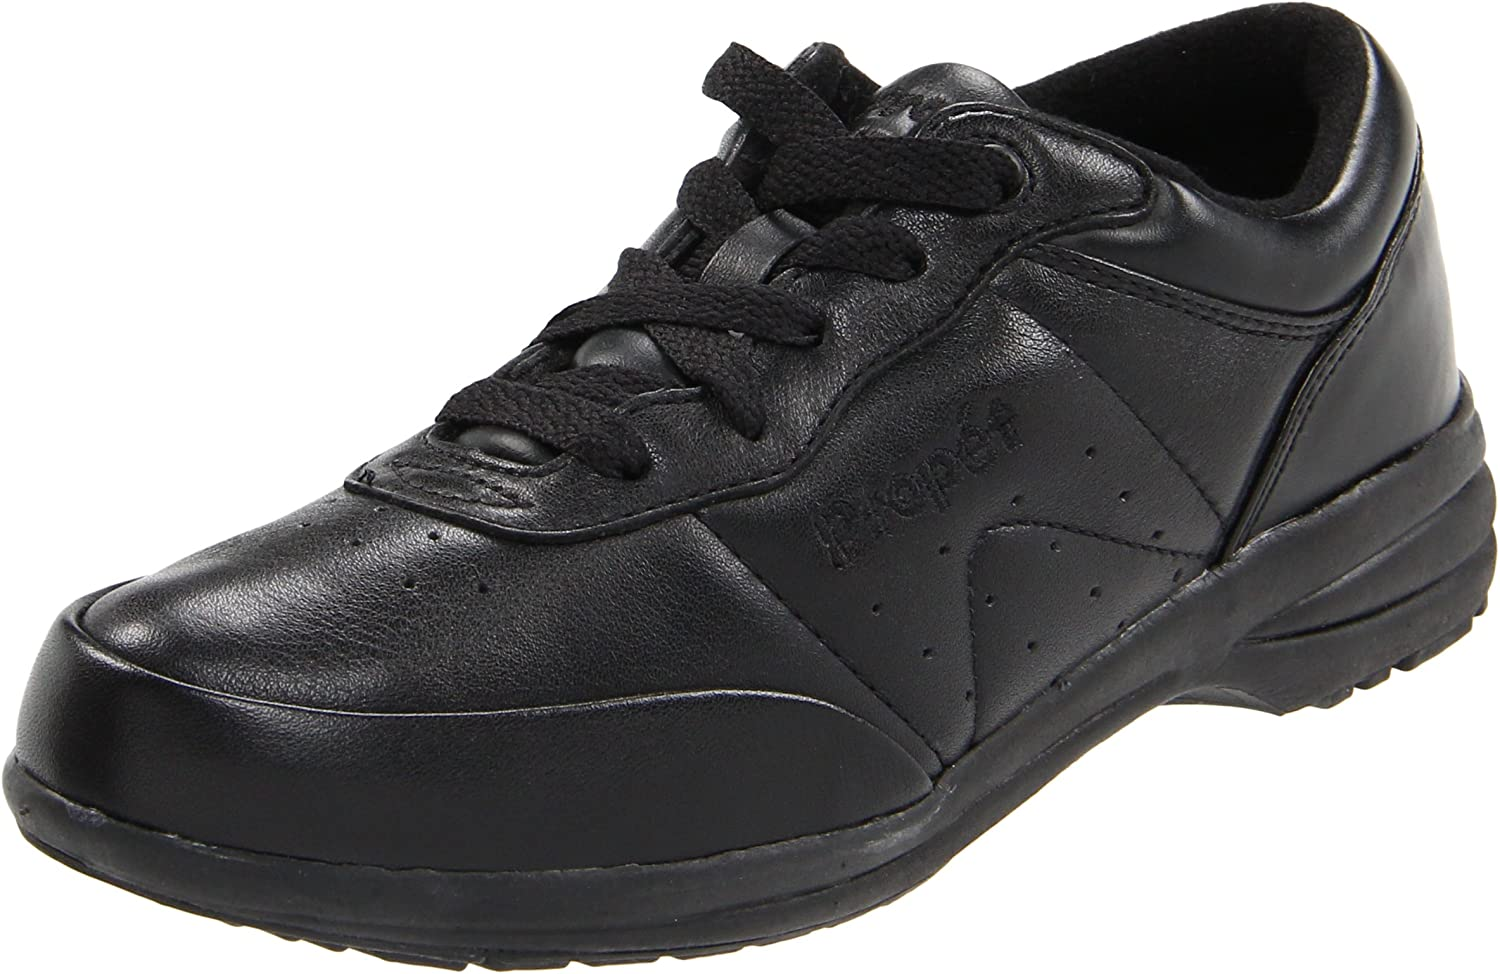 Propet Women's Washable Walker Sneaker B000P48SKU 11 N US|Black